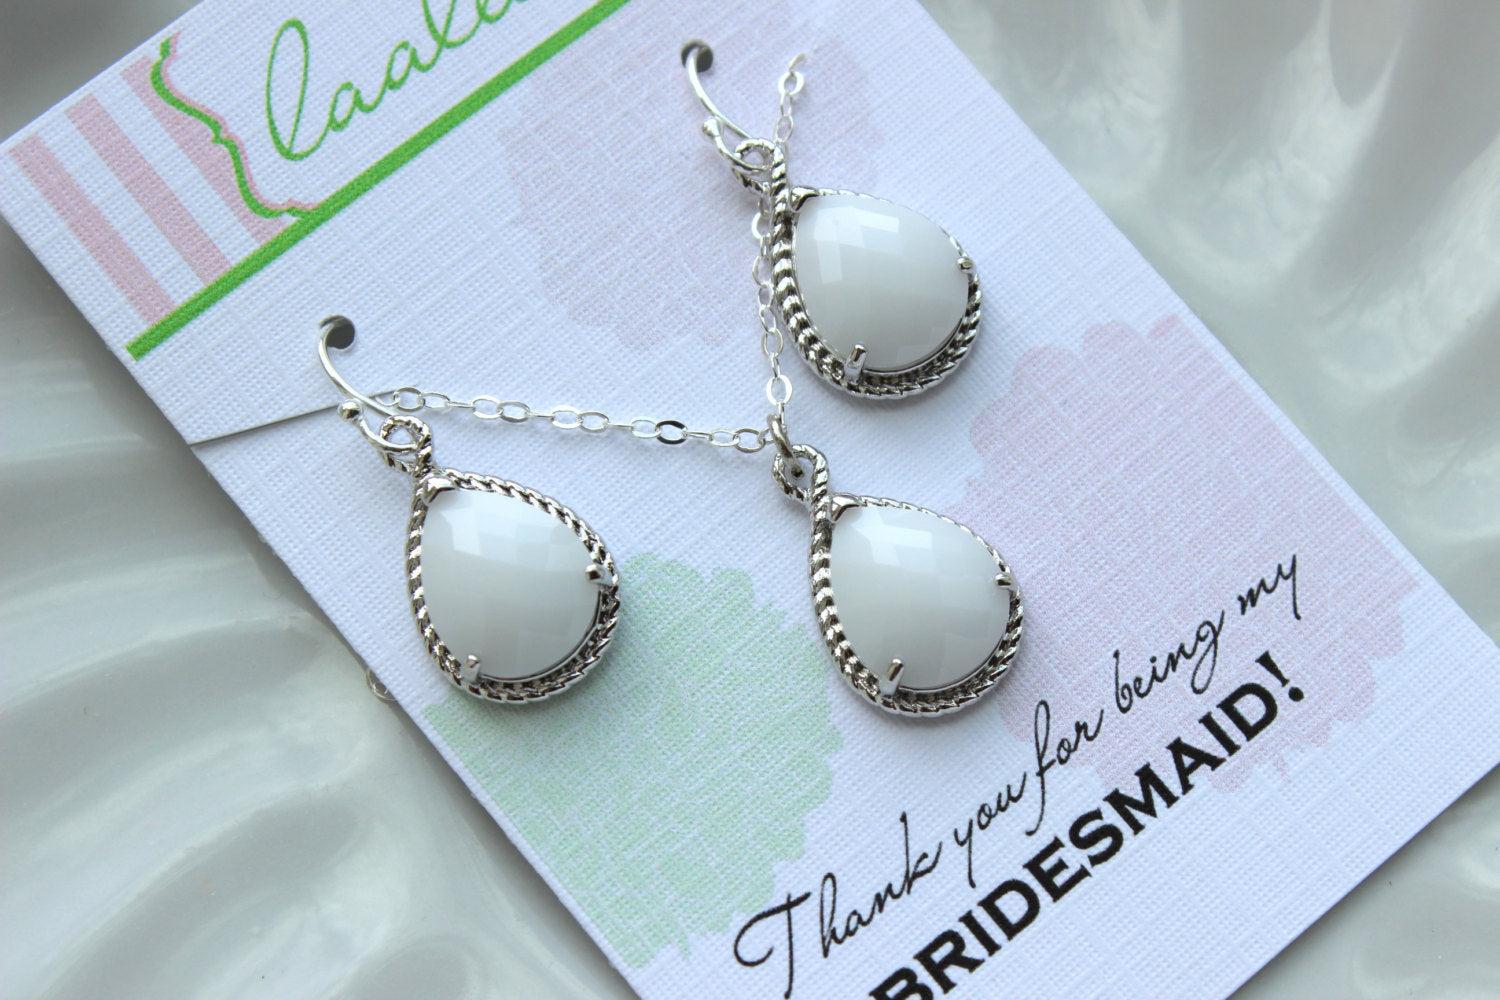 Silver White Opal Jewelry Set - Ivory Cream Earring Necklace Set - Wedding Jewelry Bridesmaid Gift Bridal Jewelry Set Personalized Note Card